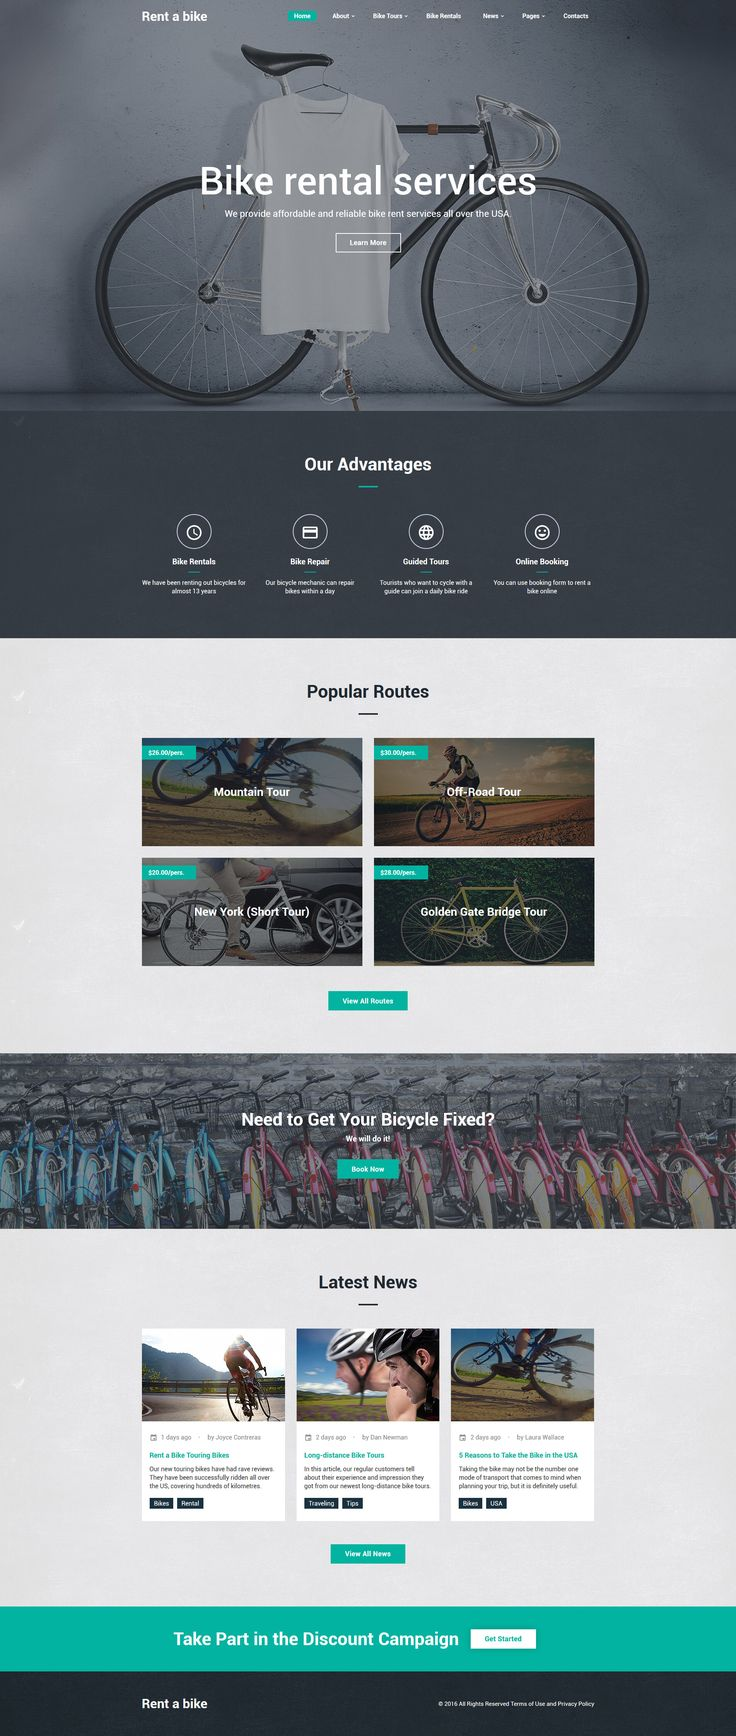 Bike Shop Responsive Website Template - http://www.templatemonster.com/website-templates/bike-shop-responsive-website-template-61188.html